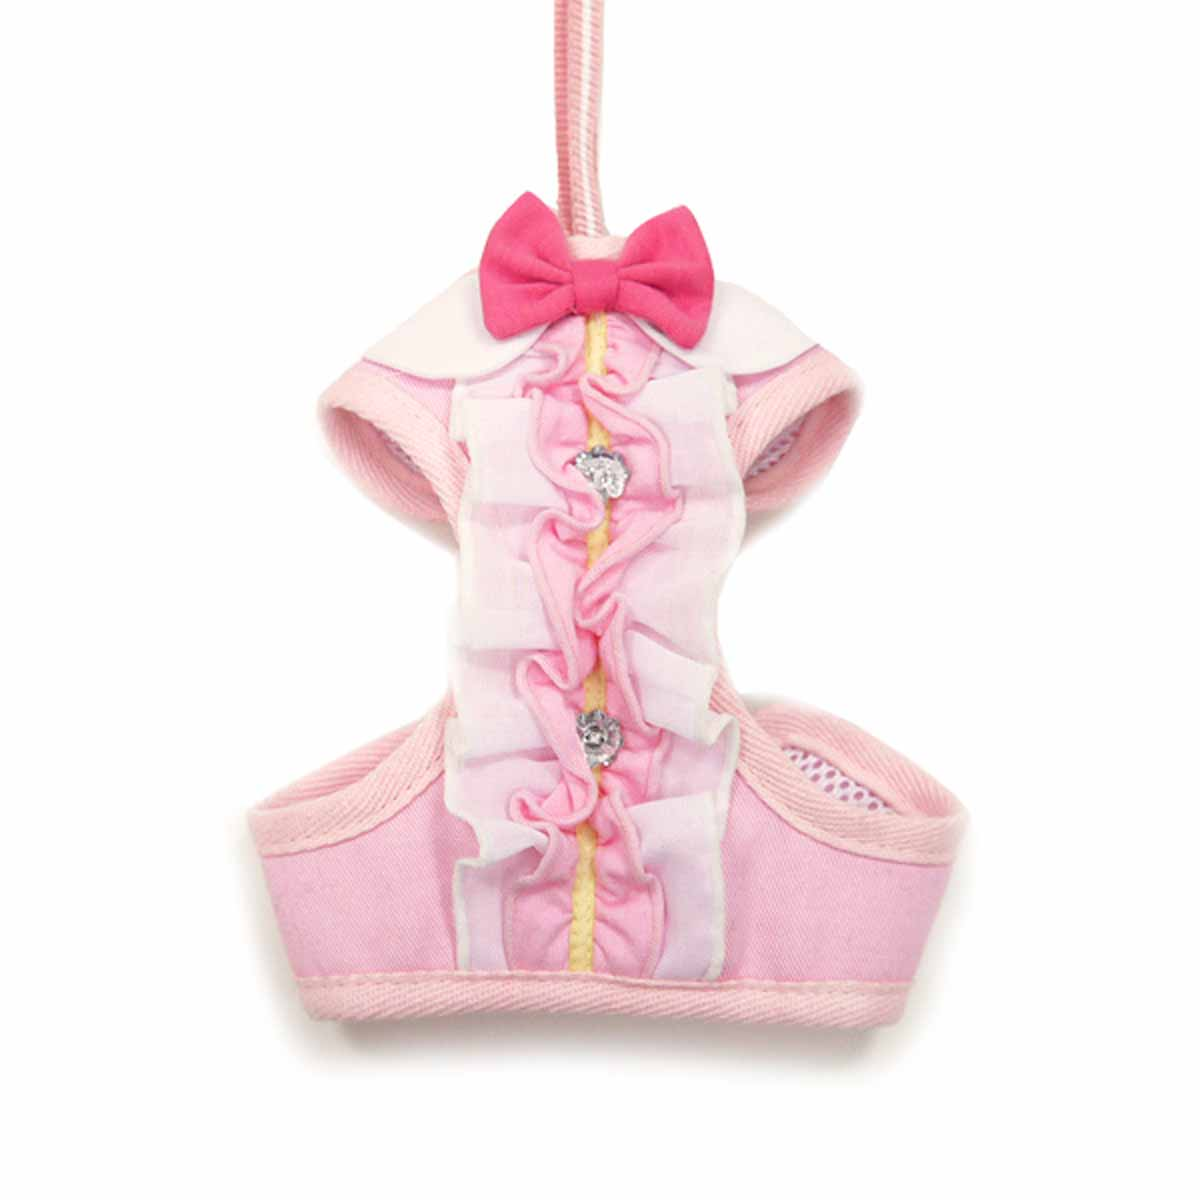 EasyGo Ruffle Dog Harness by Dogo - Pink